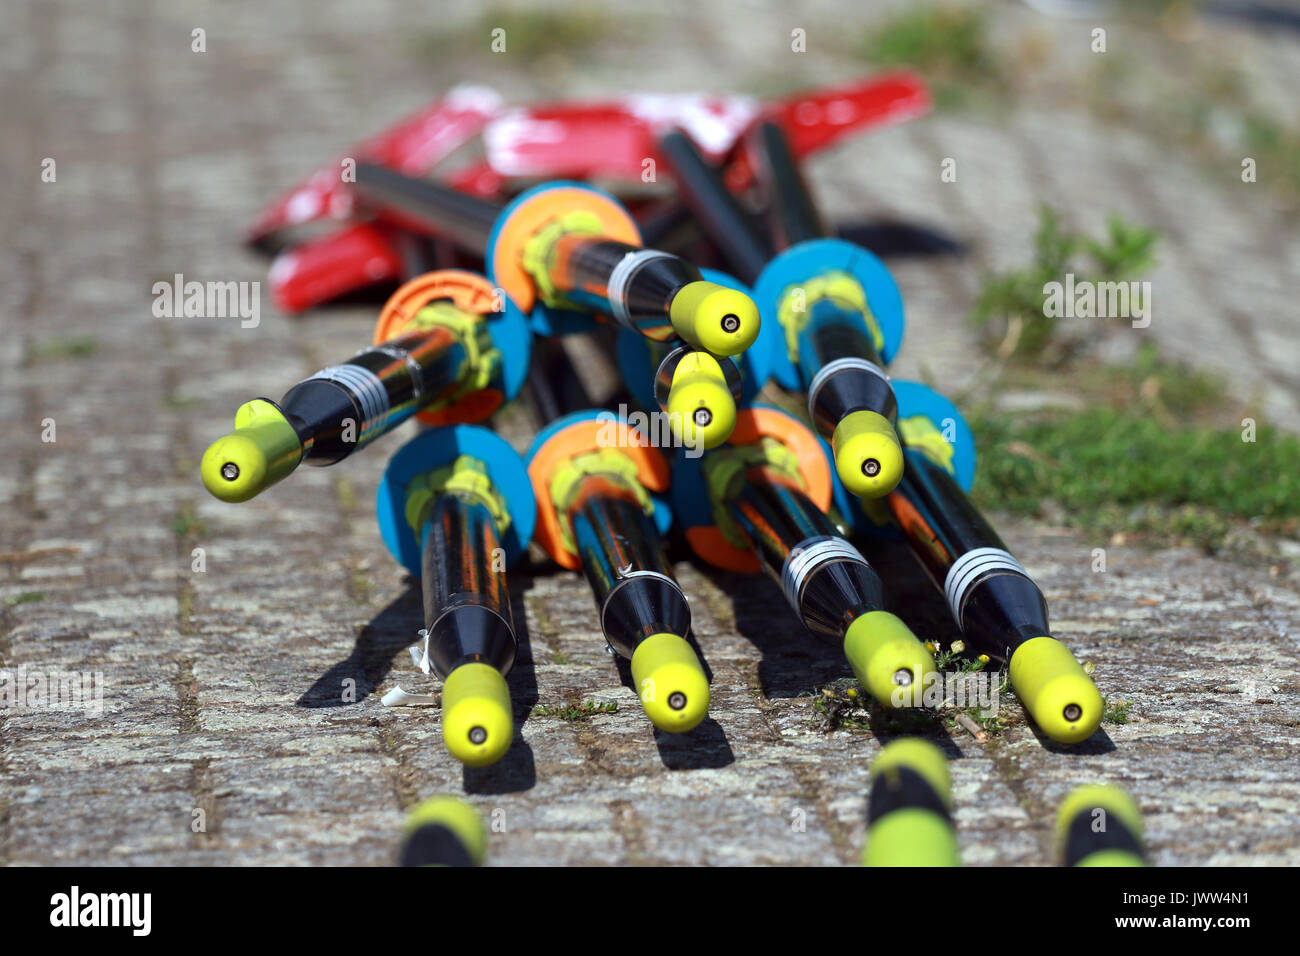 Peterborough, Cambridgeshire UK. 13th August, 2017. Rowing oars at the Peterborough Rowing Club Summer Regatta, Peterborough, Cambridgeshire UK on August 13, 2017 Credit: Paul Marriott/Alamy Live News - Stock Image